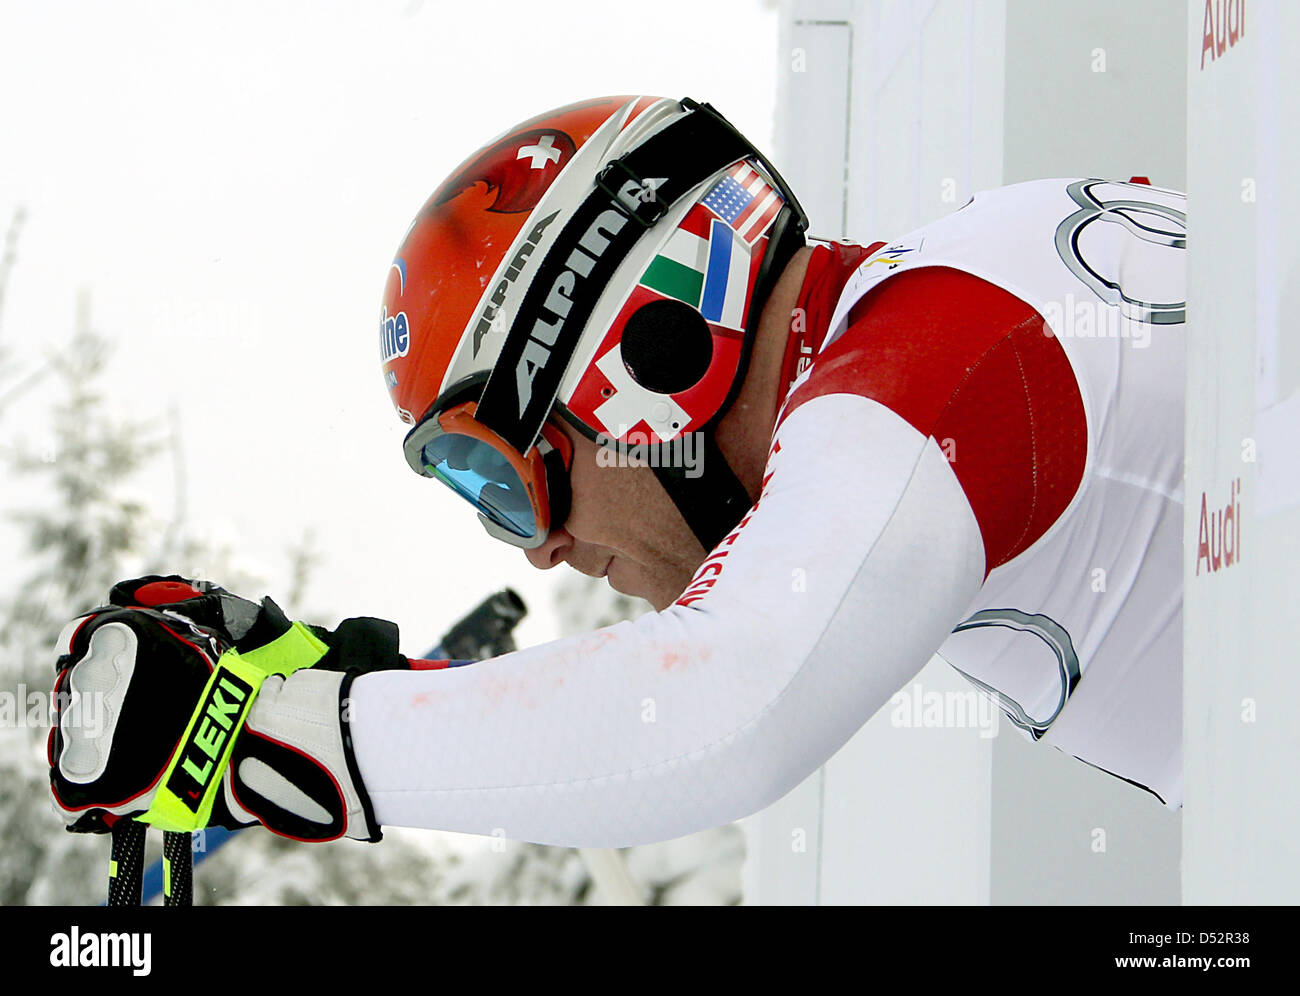 Swiss Didier Cuche pictured during the downhill training for the final of the Skiing World Cup 2010 at the Kandahar - Stock Image